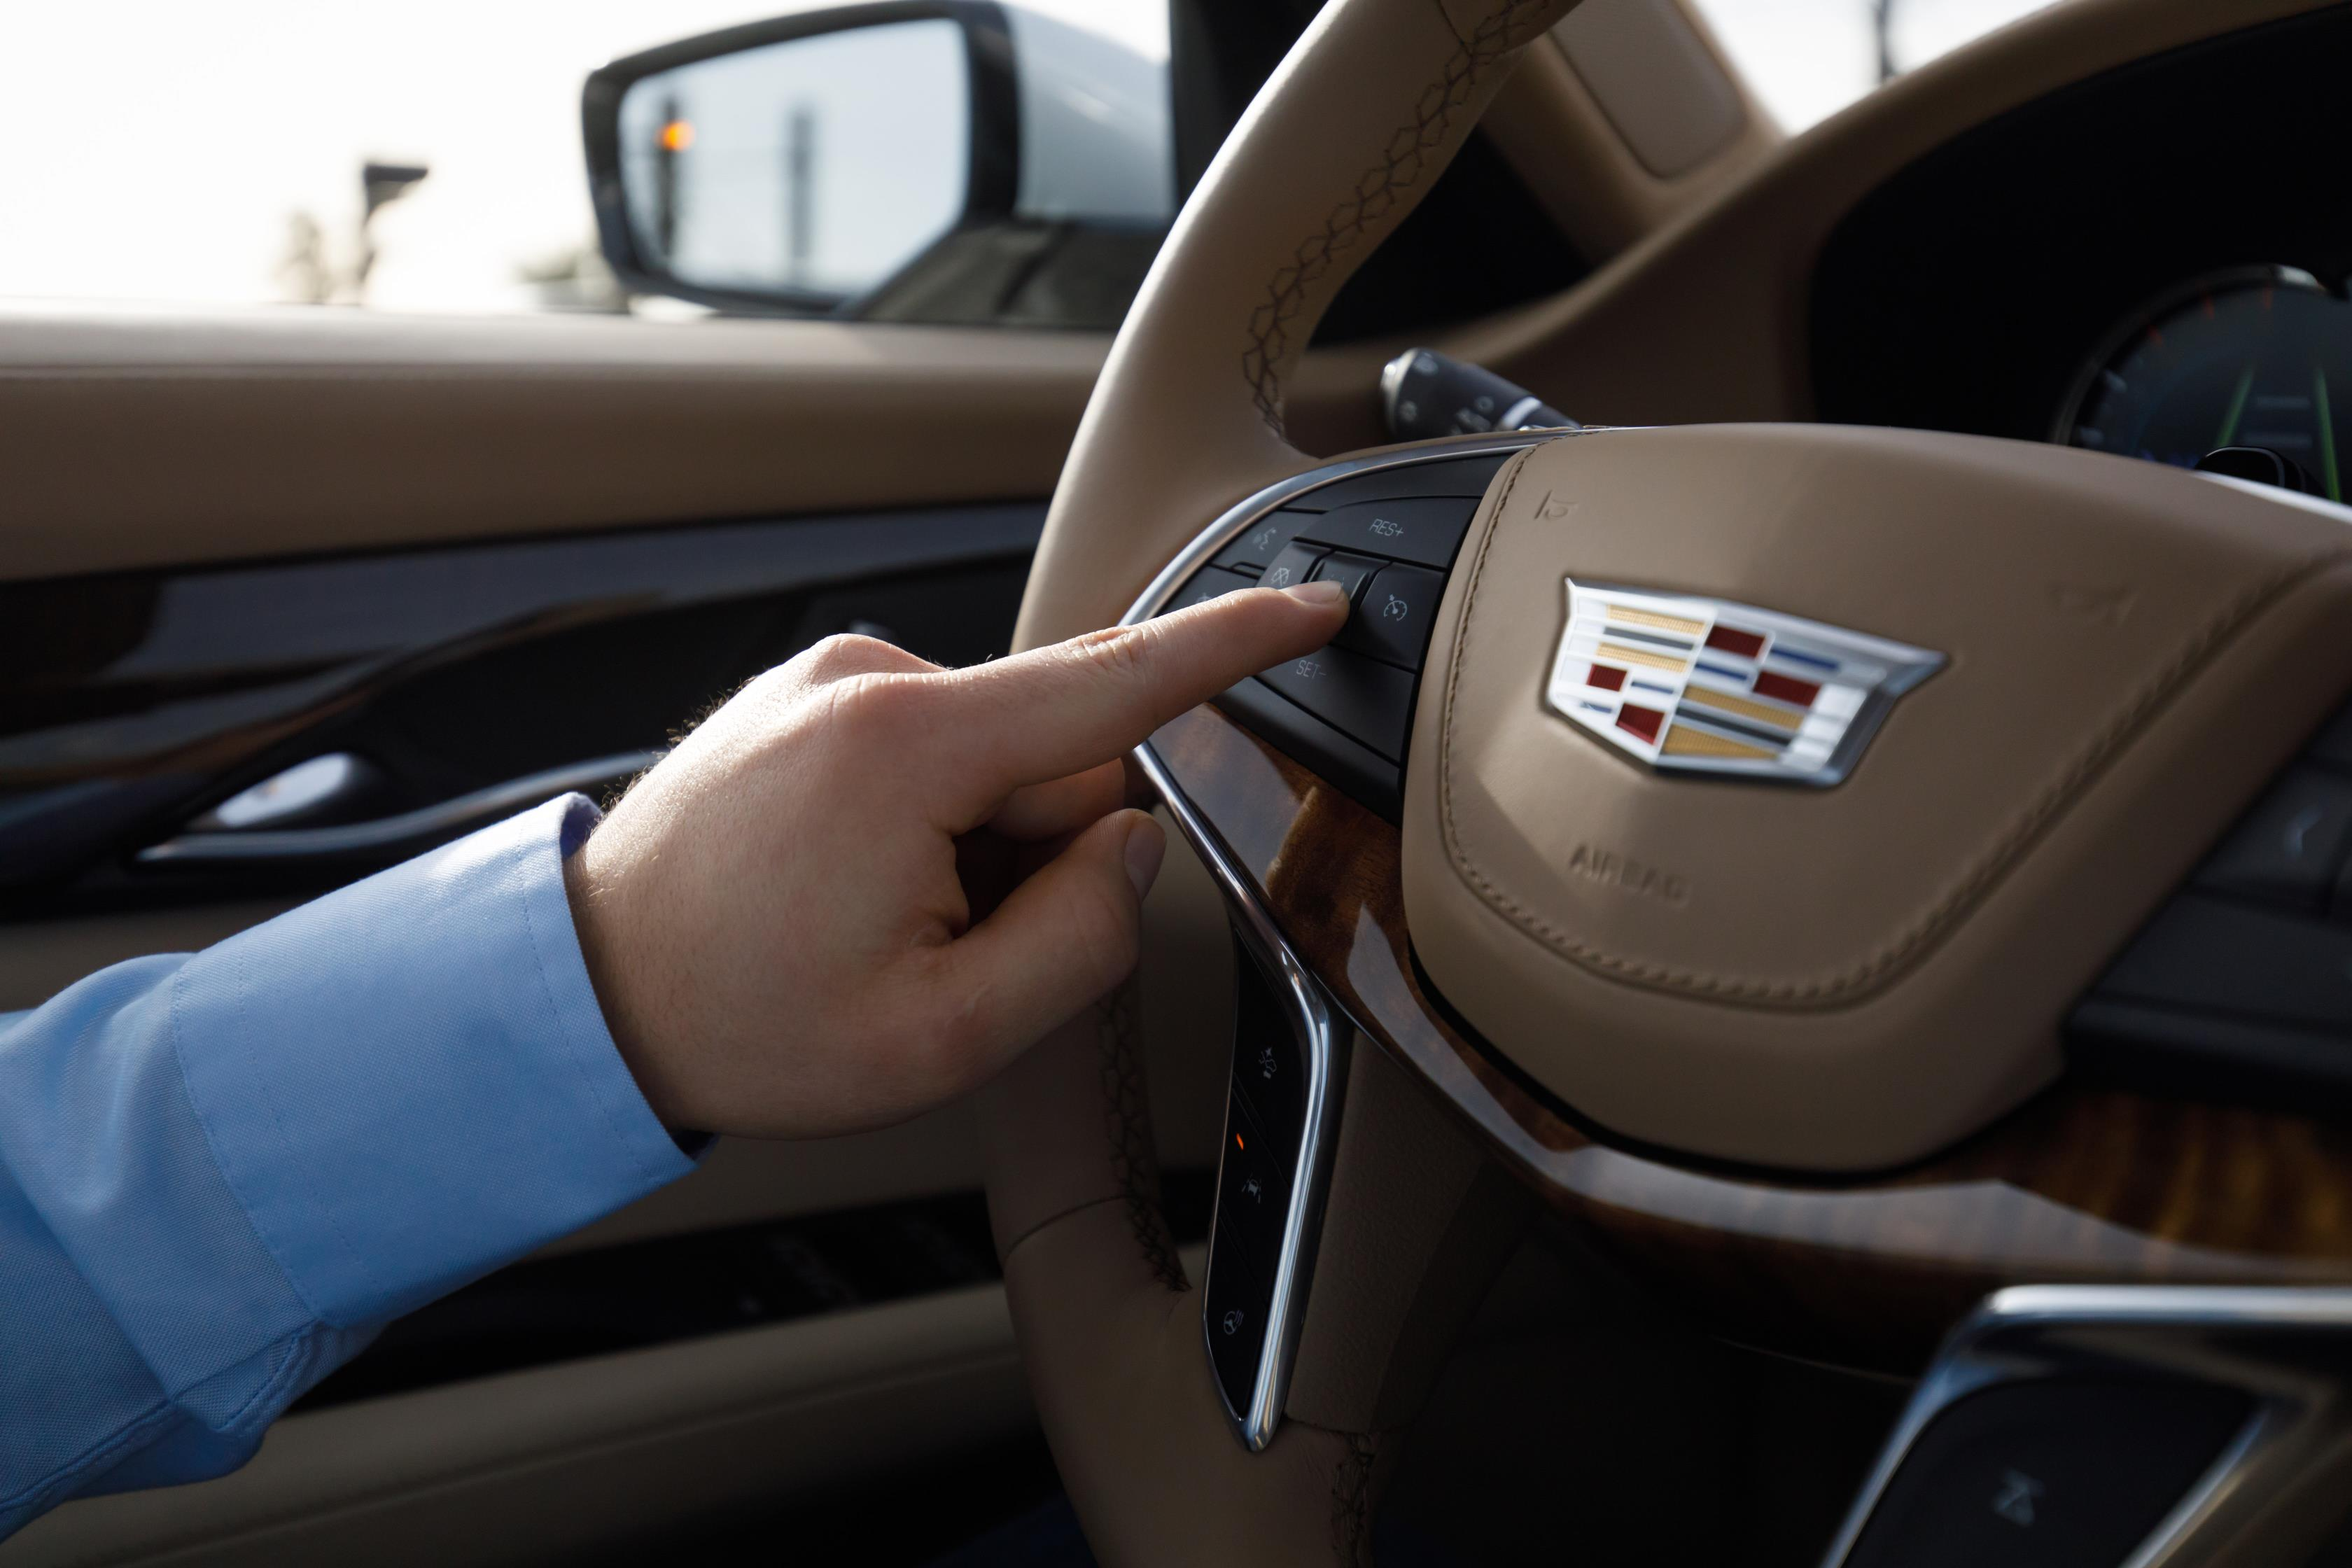 2018 cadillac ct6 with super cruise semi autonomous technology